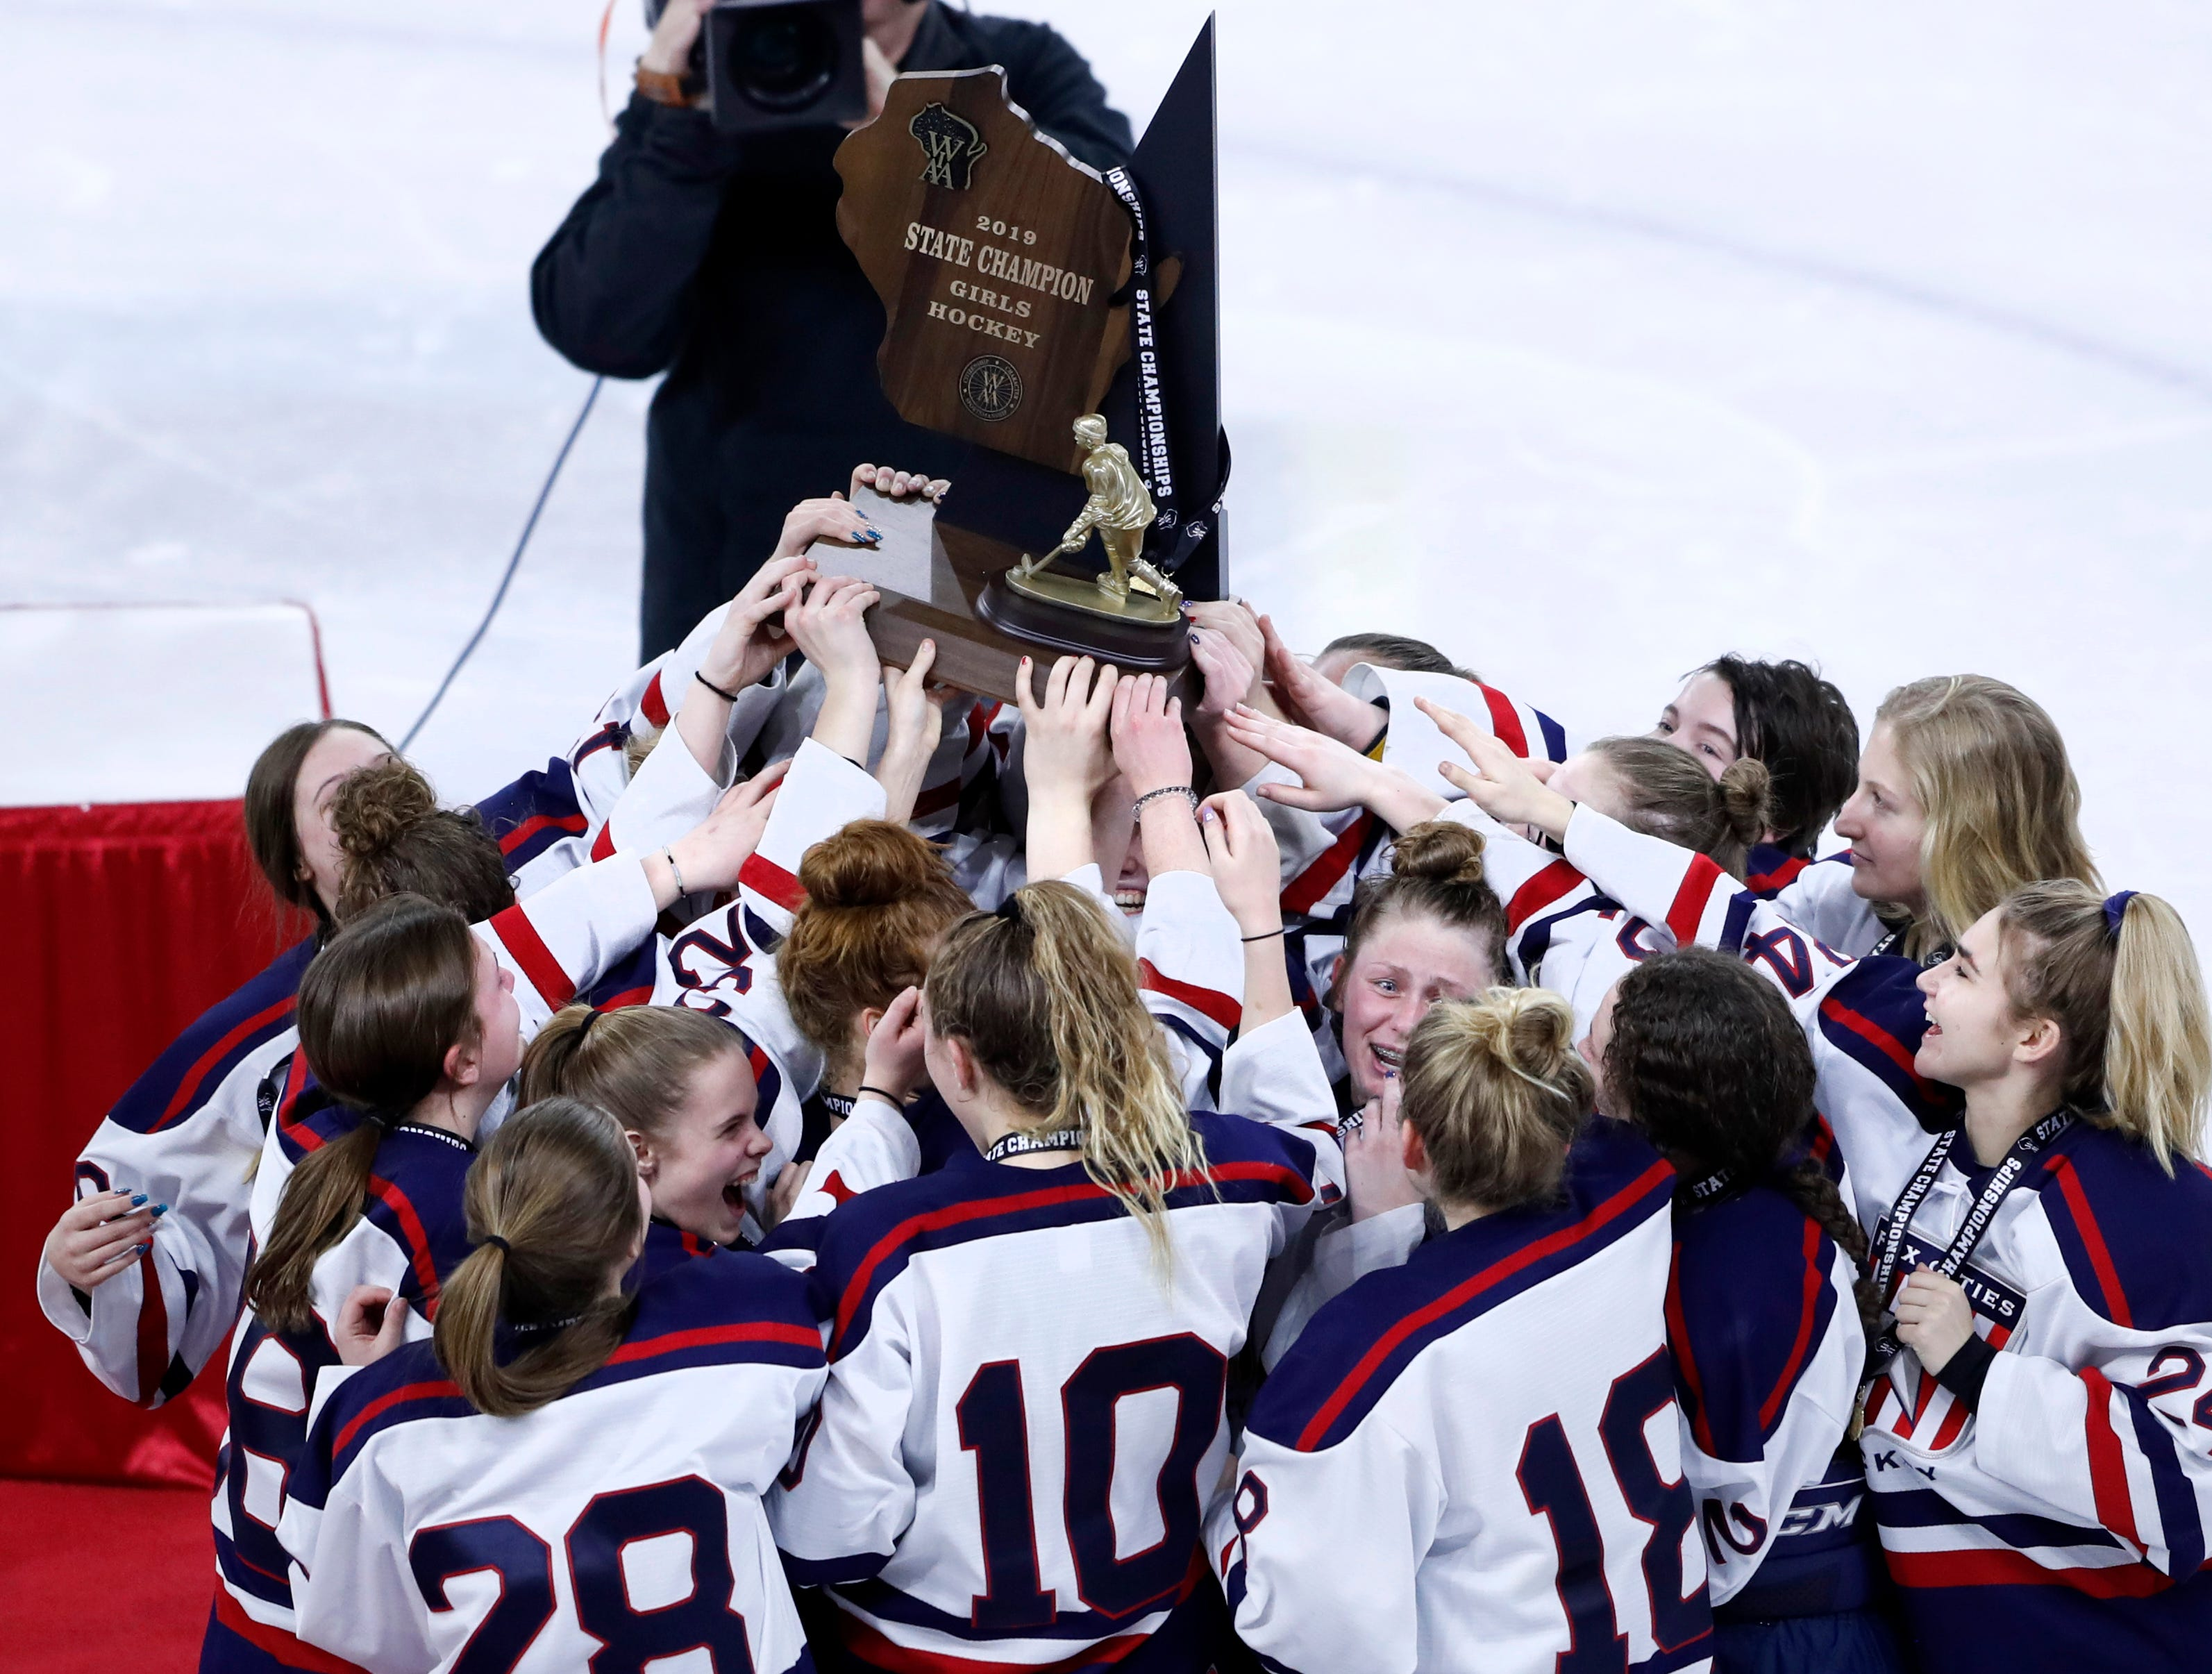 Fox Cities Stars players hold up the first place trophy after defeating Hudson in double overtime Saturday, March 2, 2019, at Veterans Memorial Coliseum in Madison, Wis.